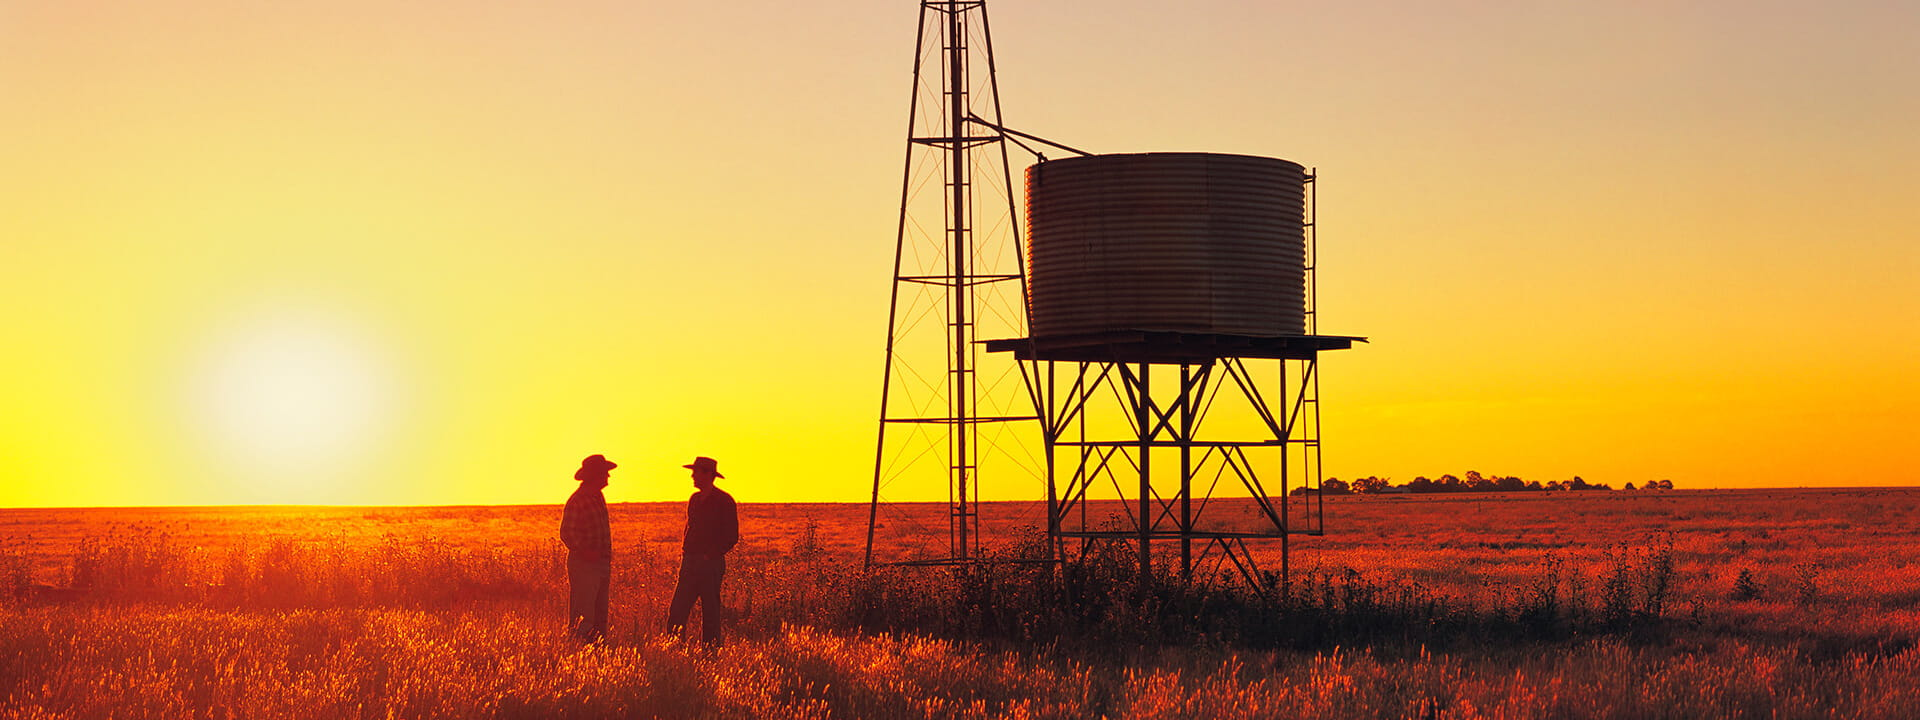 Two wheat farmers standing in a field at sunset next to a silo.